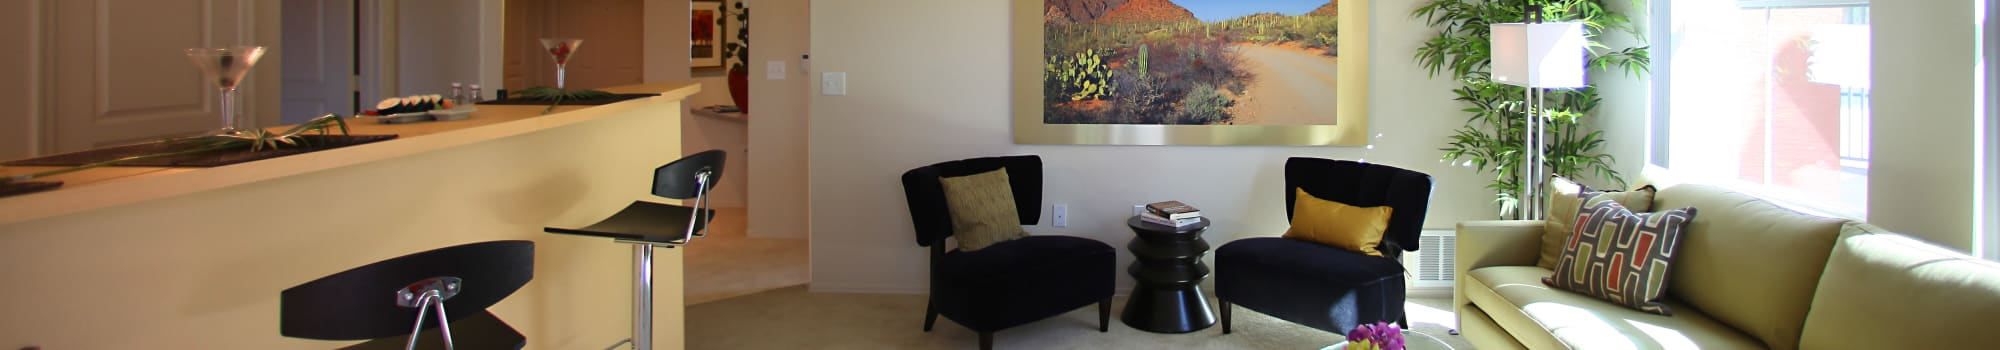 Request a tour at Sage Luxury Apartment Homes in Phoenix, Arizona